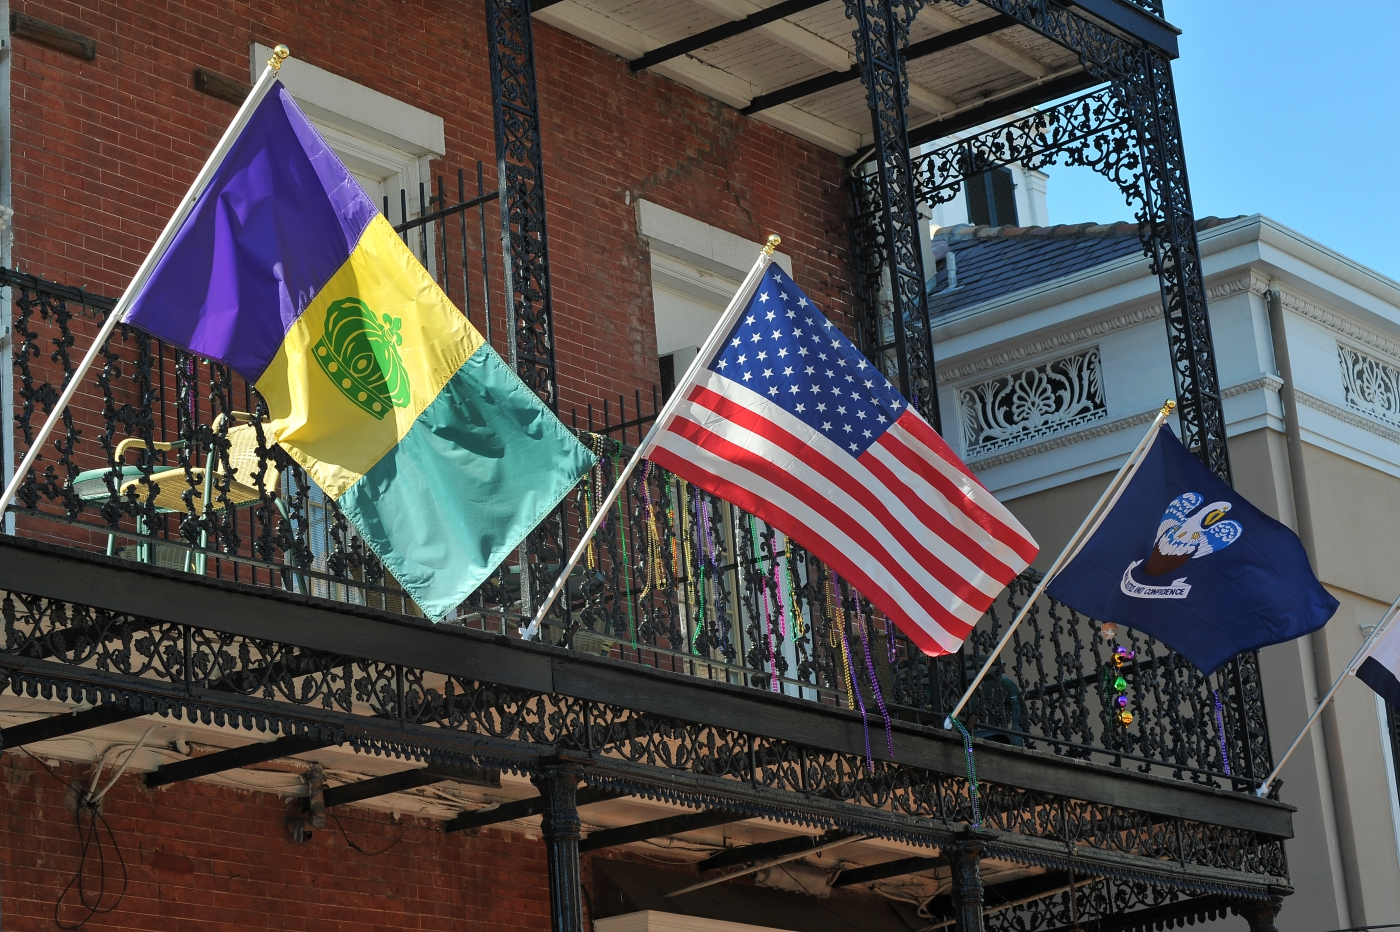 Flags blowing in the breeze in the French Quarter.